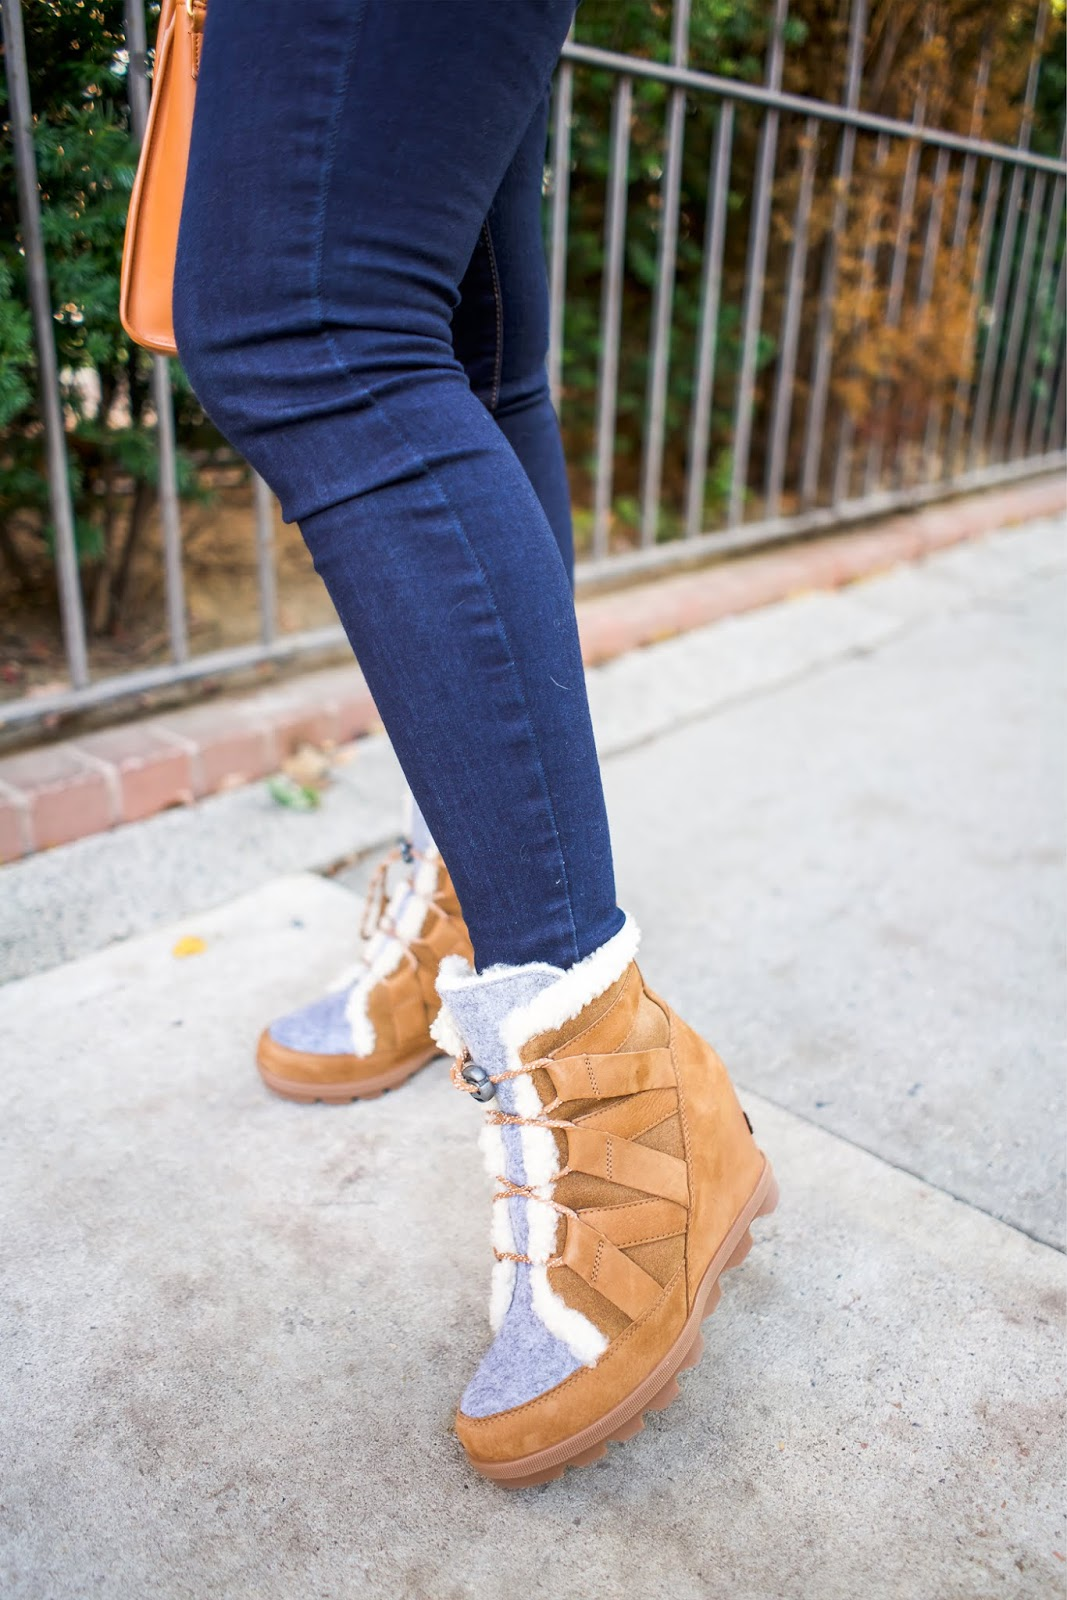 The Best Boots For A Nyc Winter New York City Fashion And Lifestyle Blog Covering The Bases